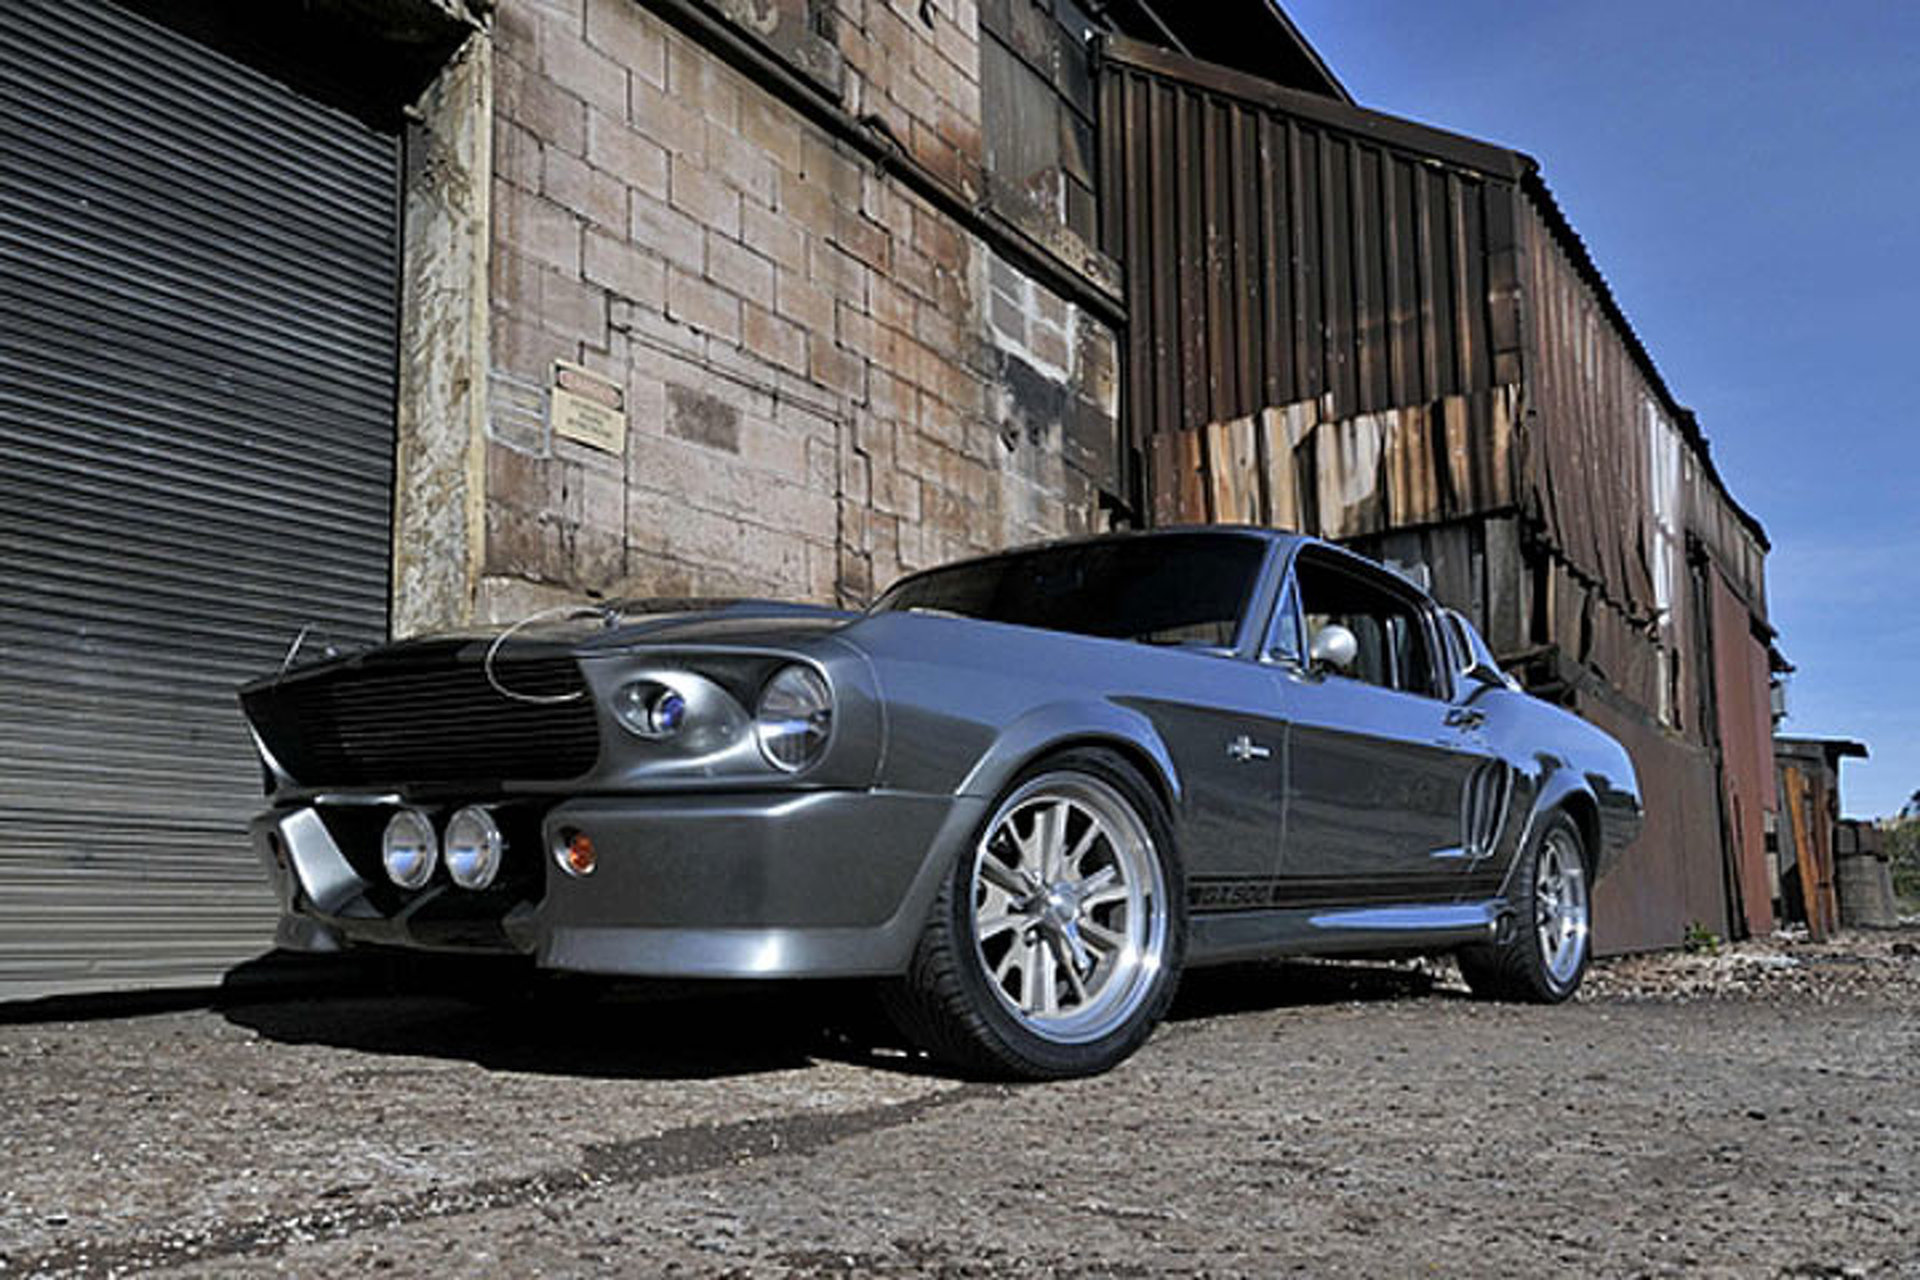 Tips for Building an Eleanor Mustang from Gone in 60 Seconds